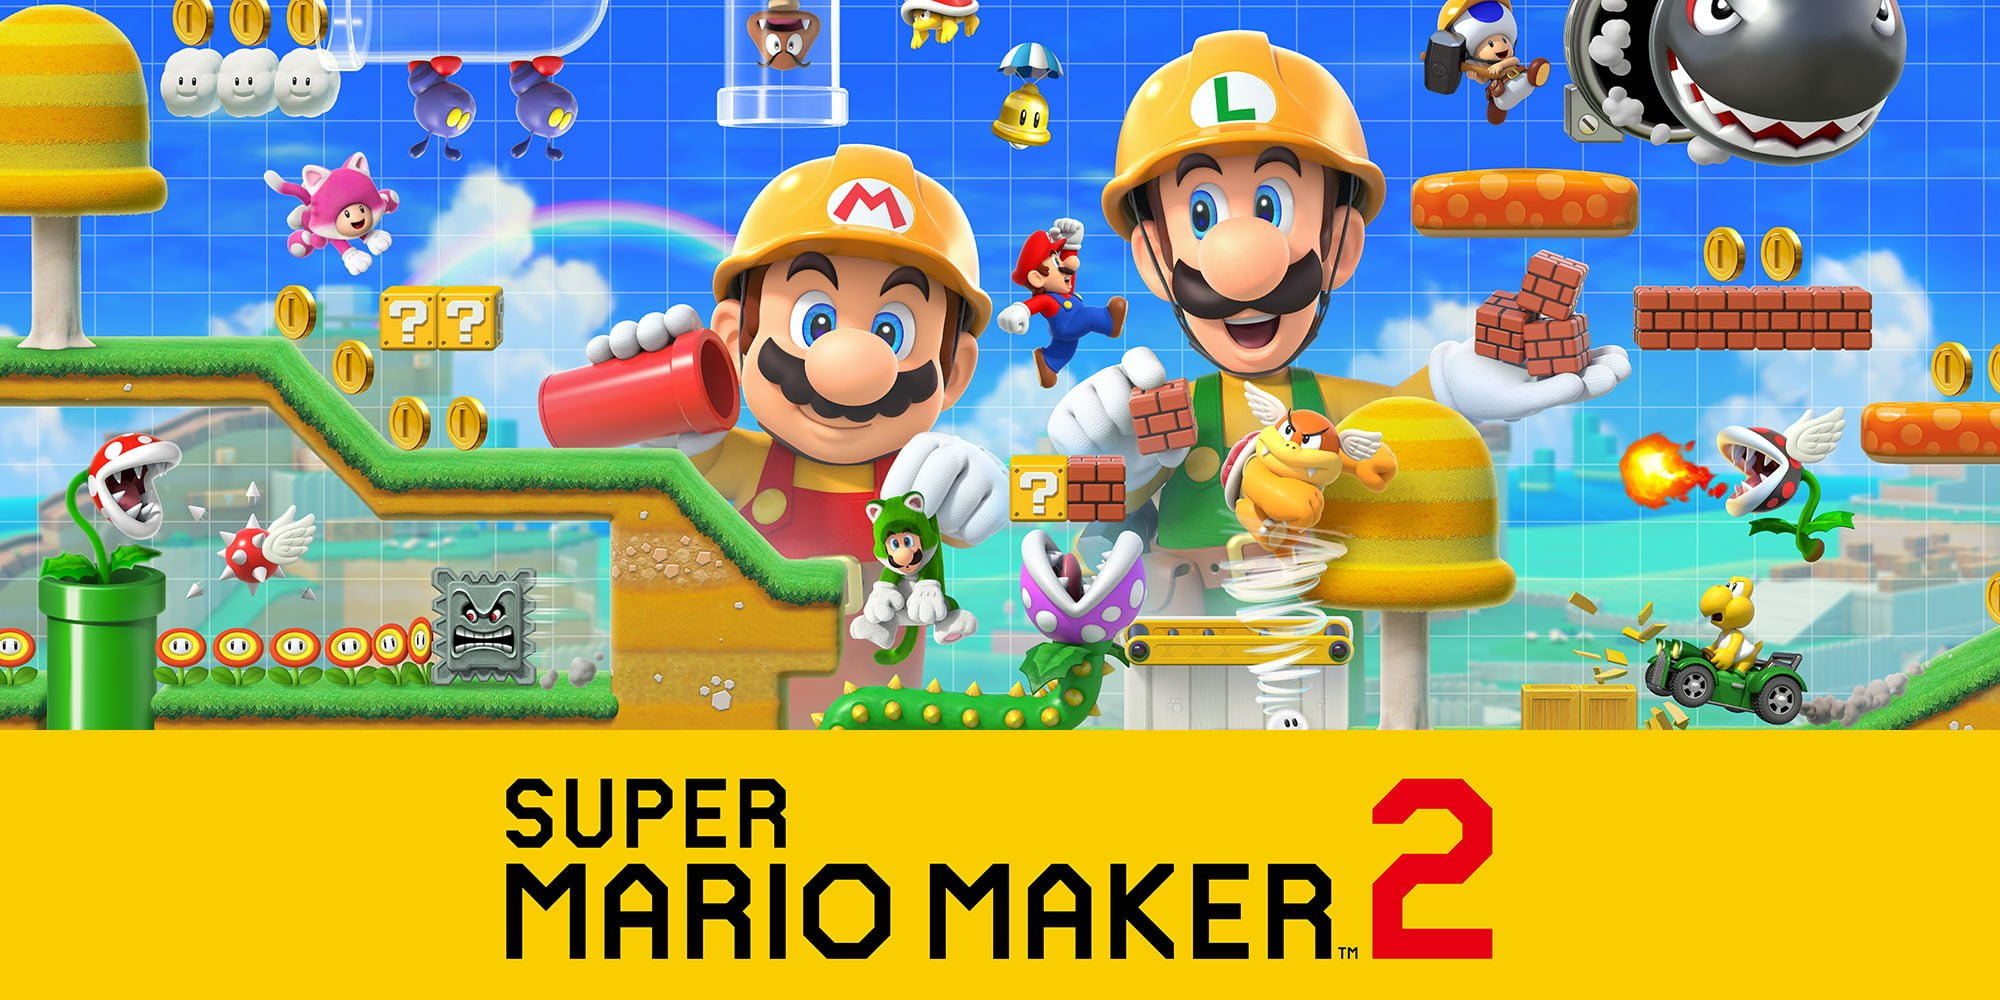 Super Mario Maker 2 Full Version Free Download 2019